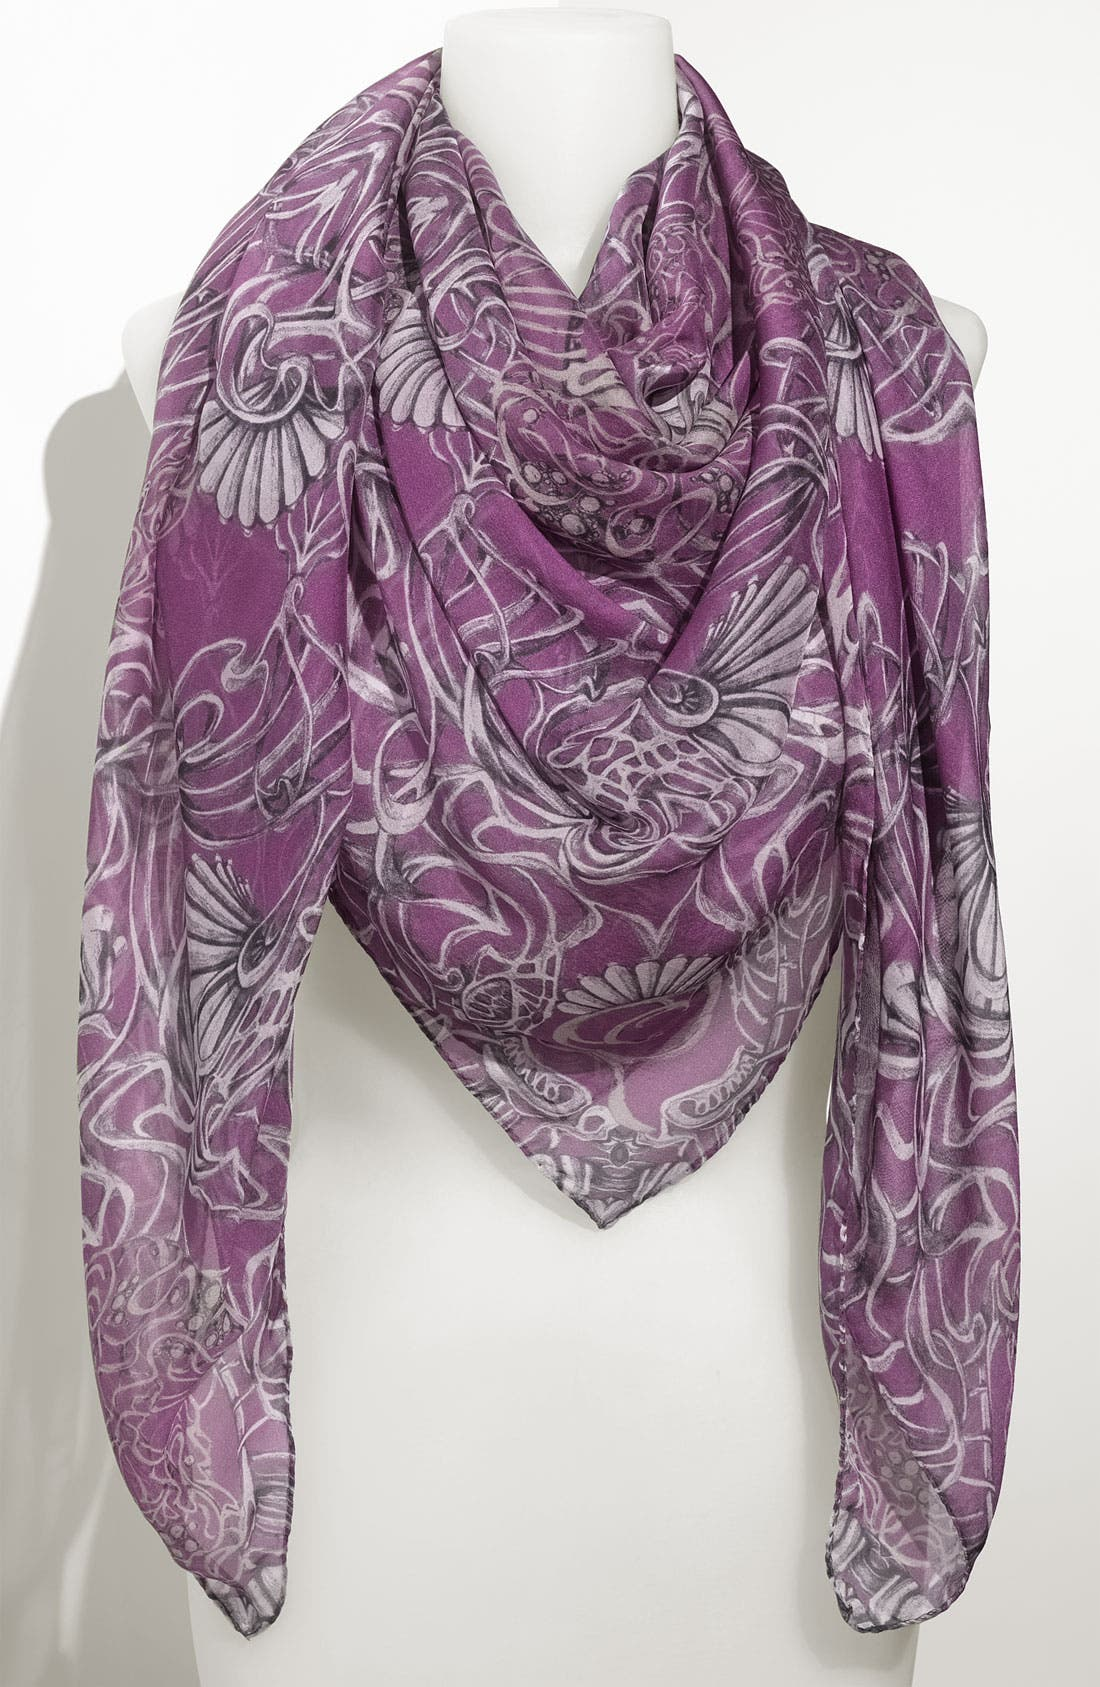 Alternate Image 1 Selected - Alexander McQueen 'Art Nouveau' Chiffon Square Scarf